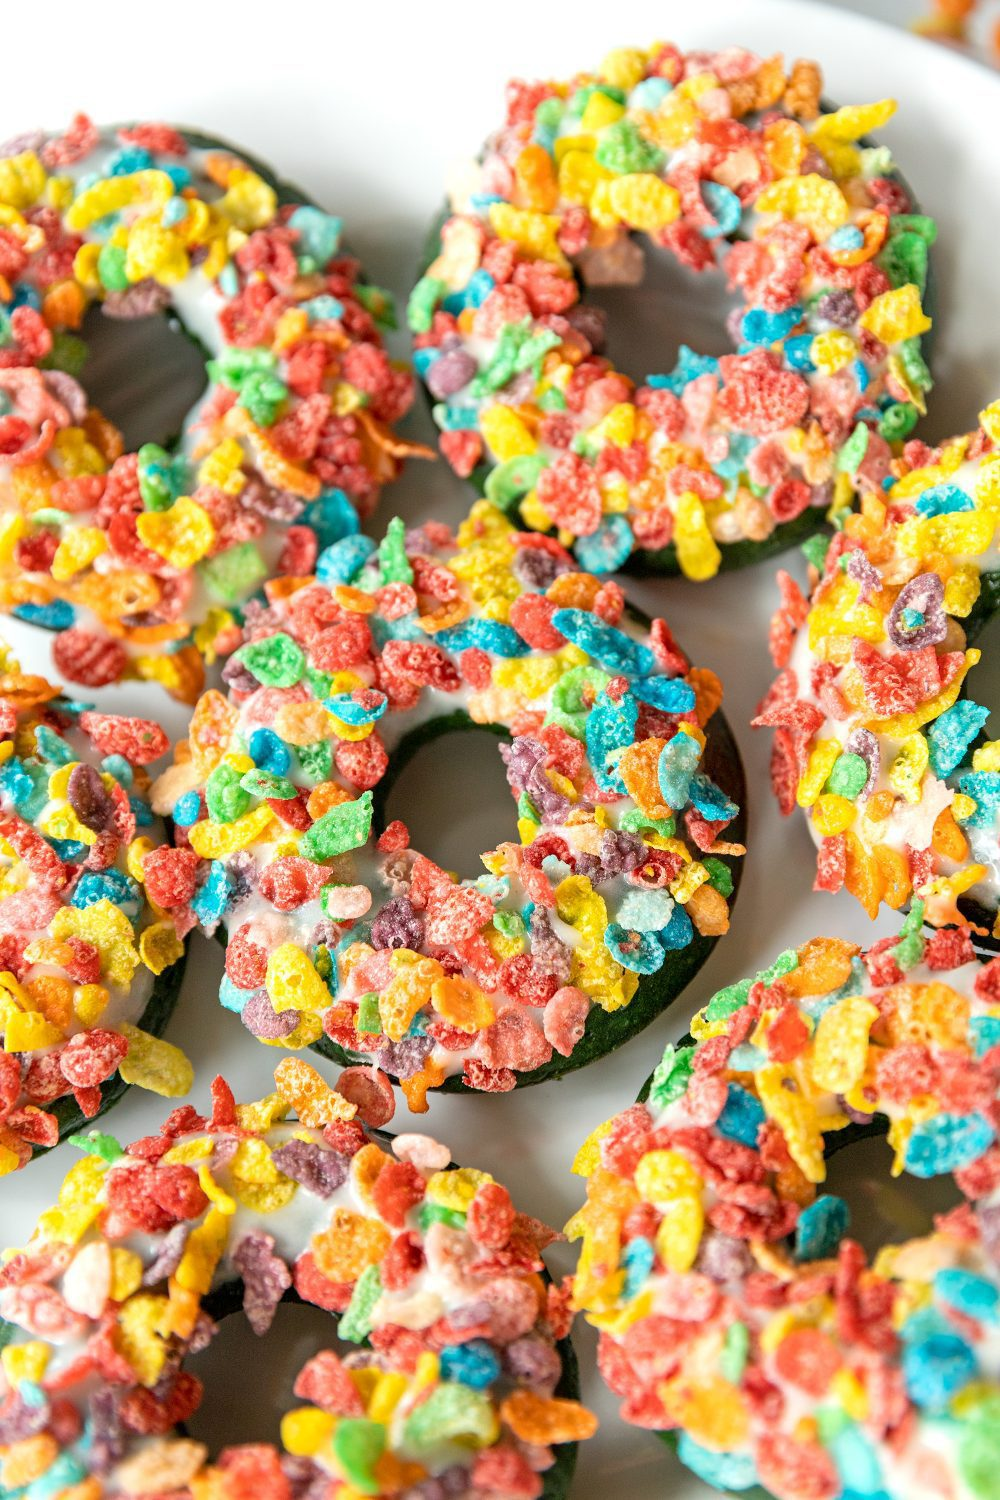 plate full of colorful baked donuts